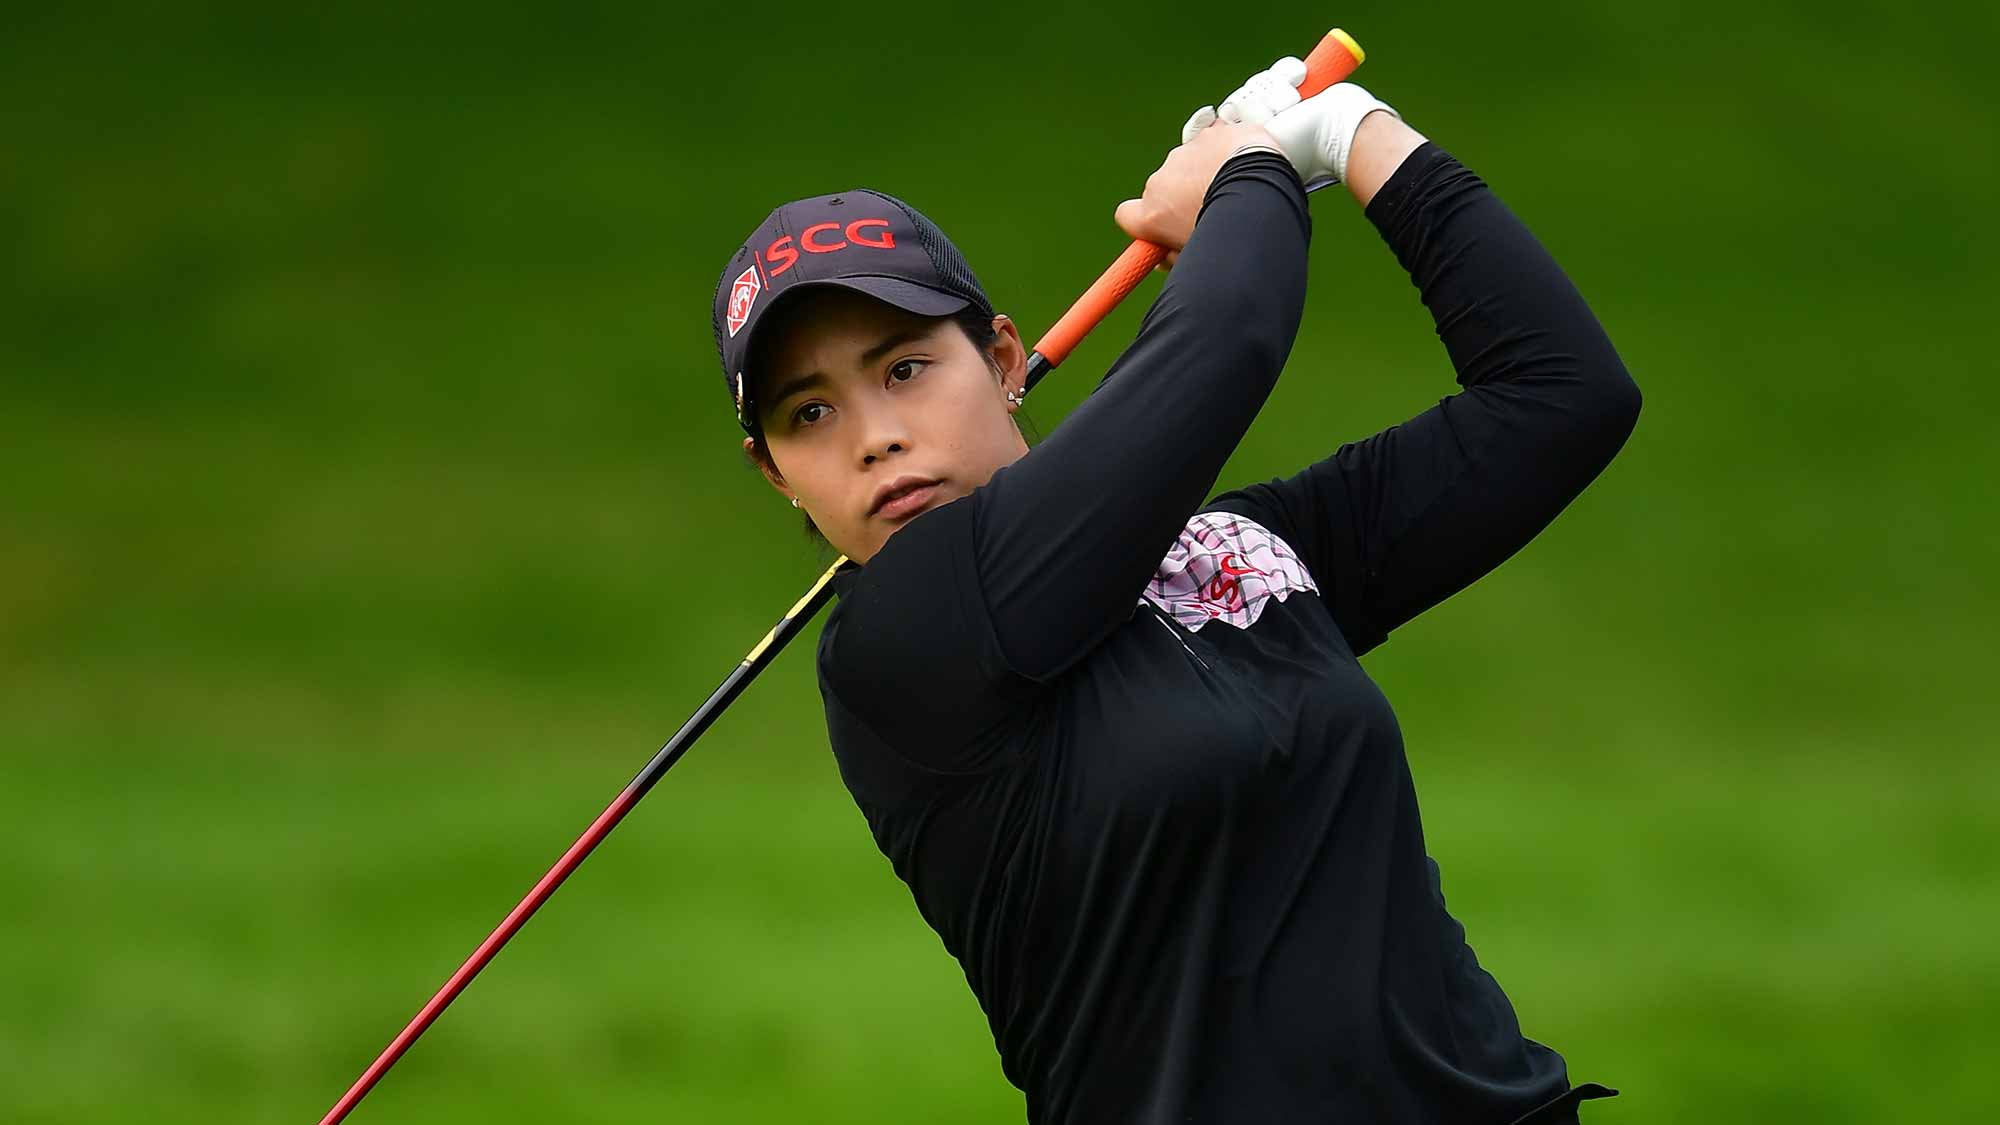 Moriya Jutanugarn of Thailand plays a shot during the second round of The Evian Championship 2017 at Evian Resort Golf Club